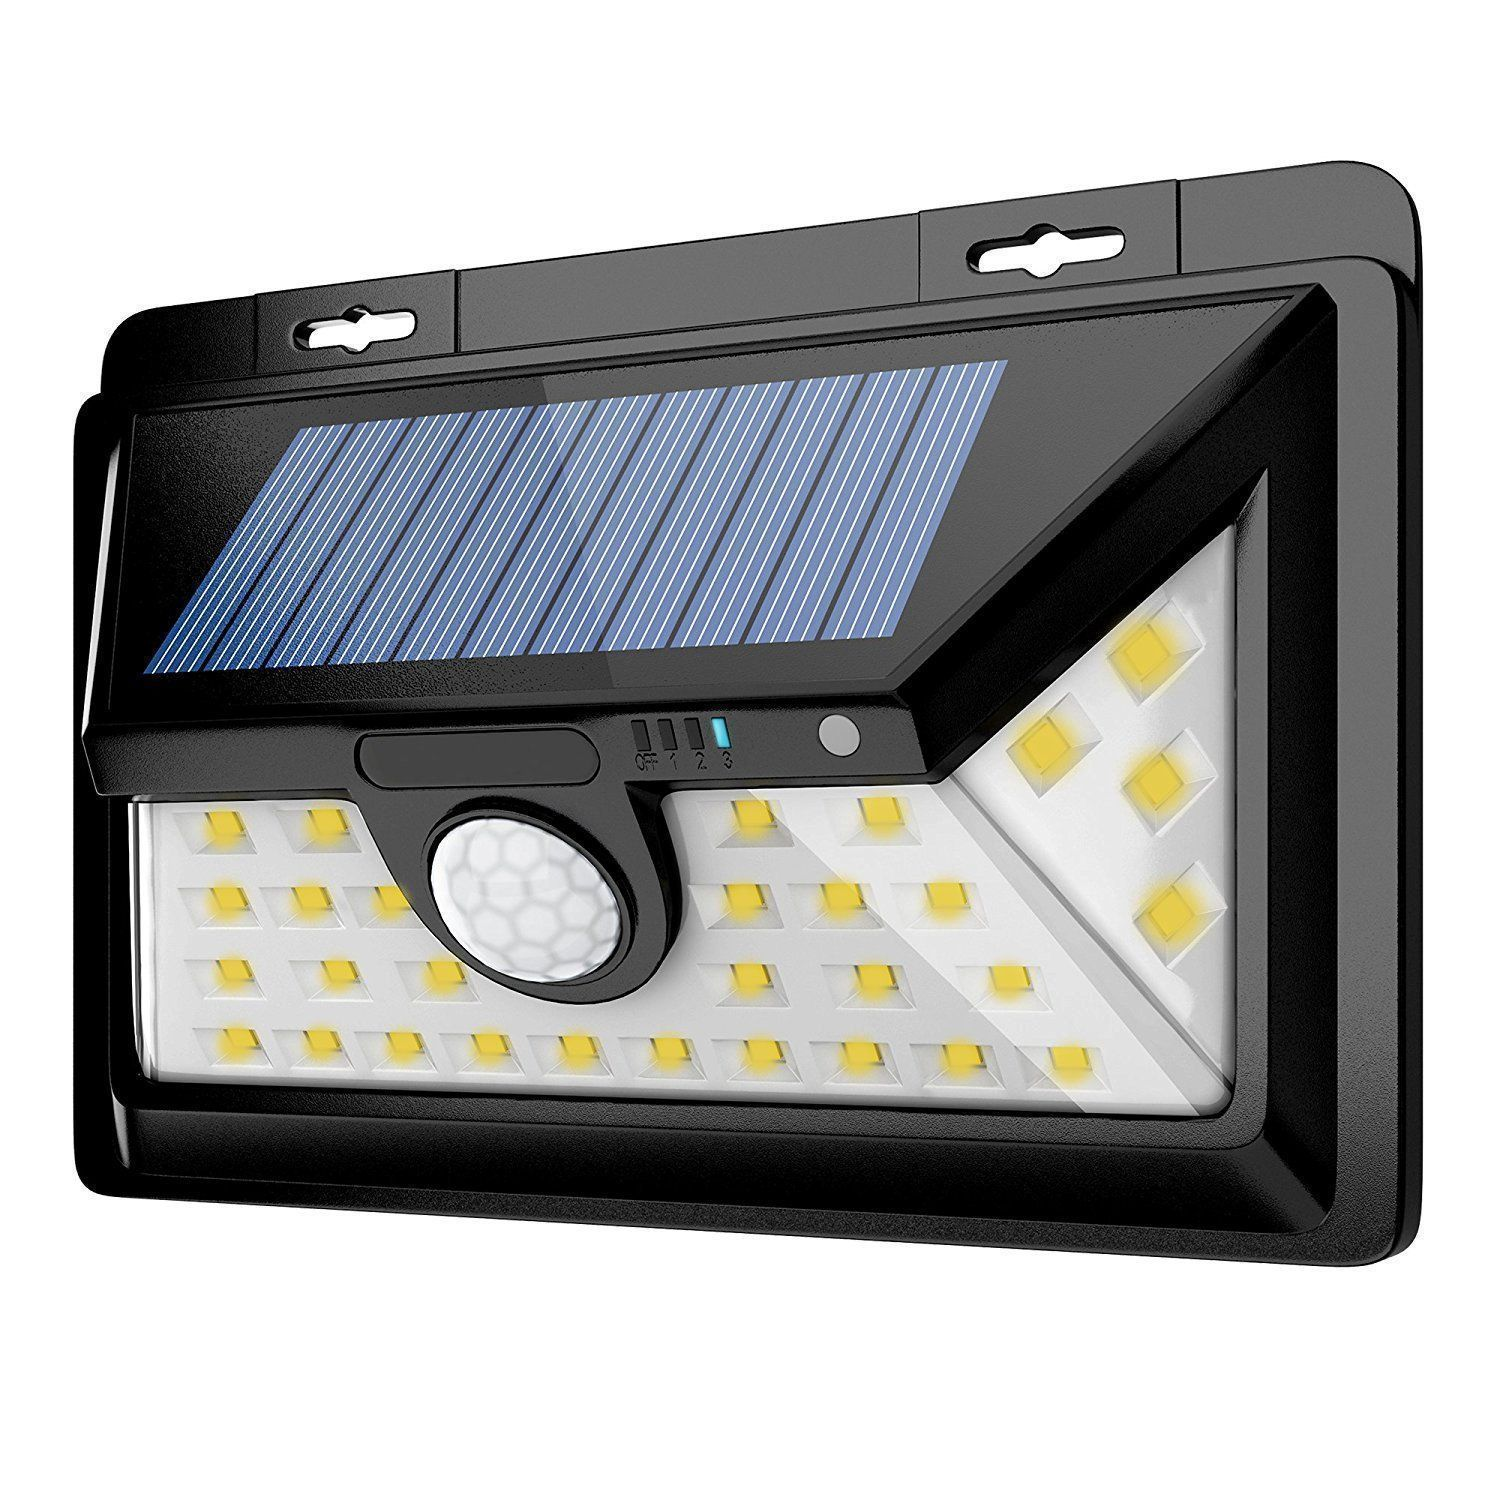 Imay solar lights outdoor leds solar warm lights front switch